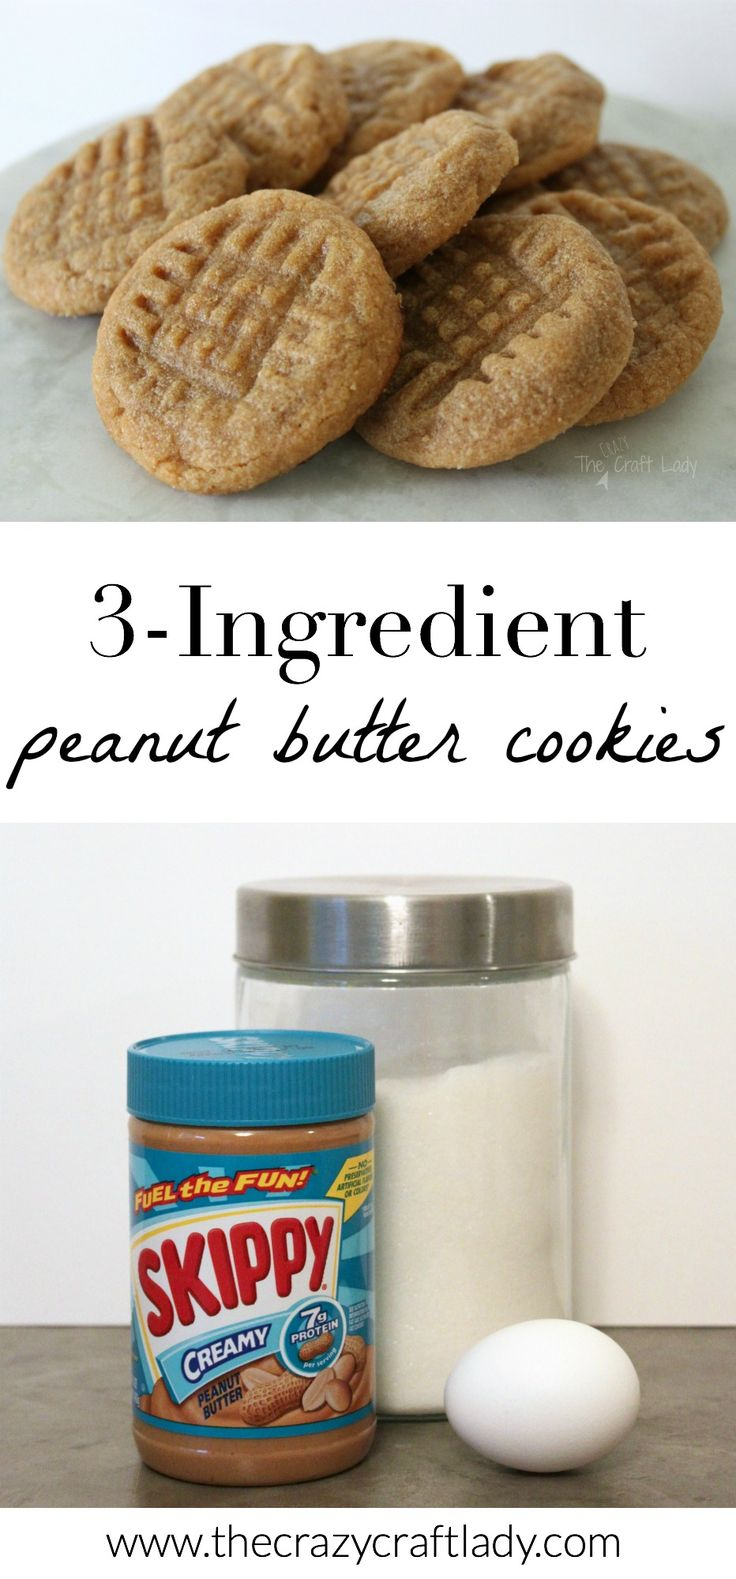 3-ingredient peanut butter cookies (peanut butter, sugar, and egg).  These cookies take just minutes to whip up and are perfectly soft and delicious!